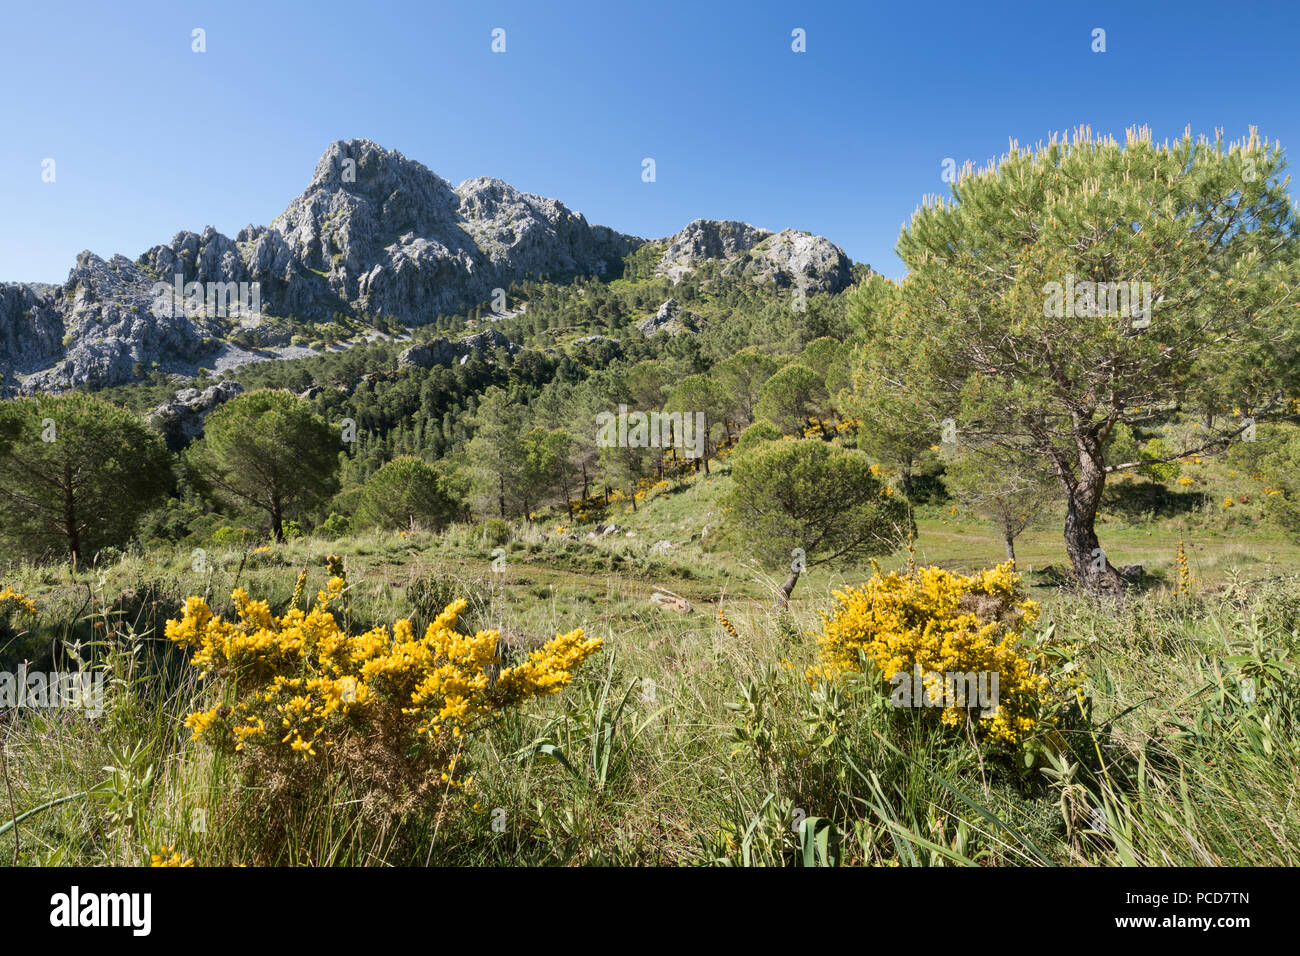 Rugged mountain scenery in spring near Grazalema, Sierra de Grazalema Natural Park, Andalucia, Spain, Europe - Stock Image